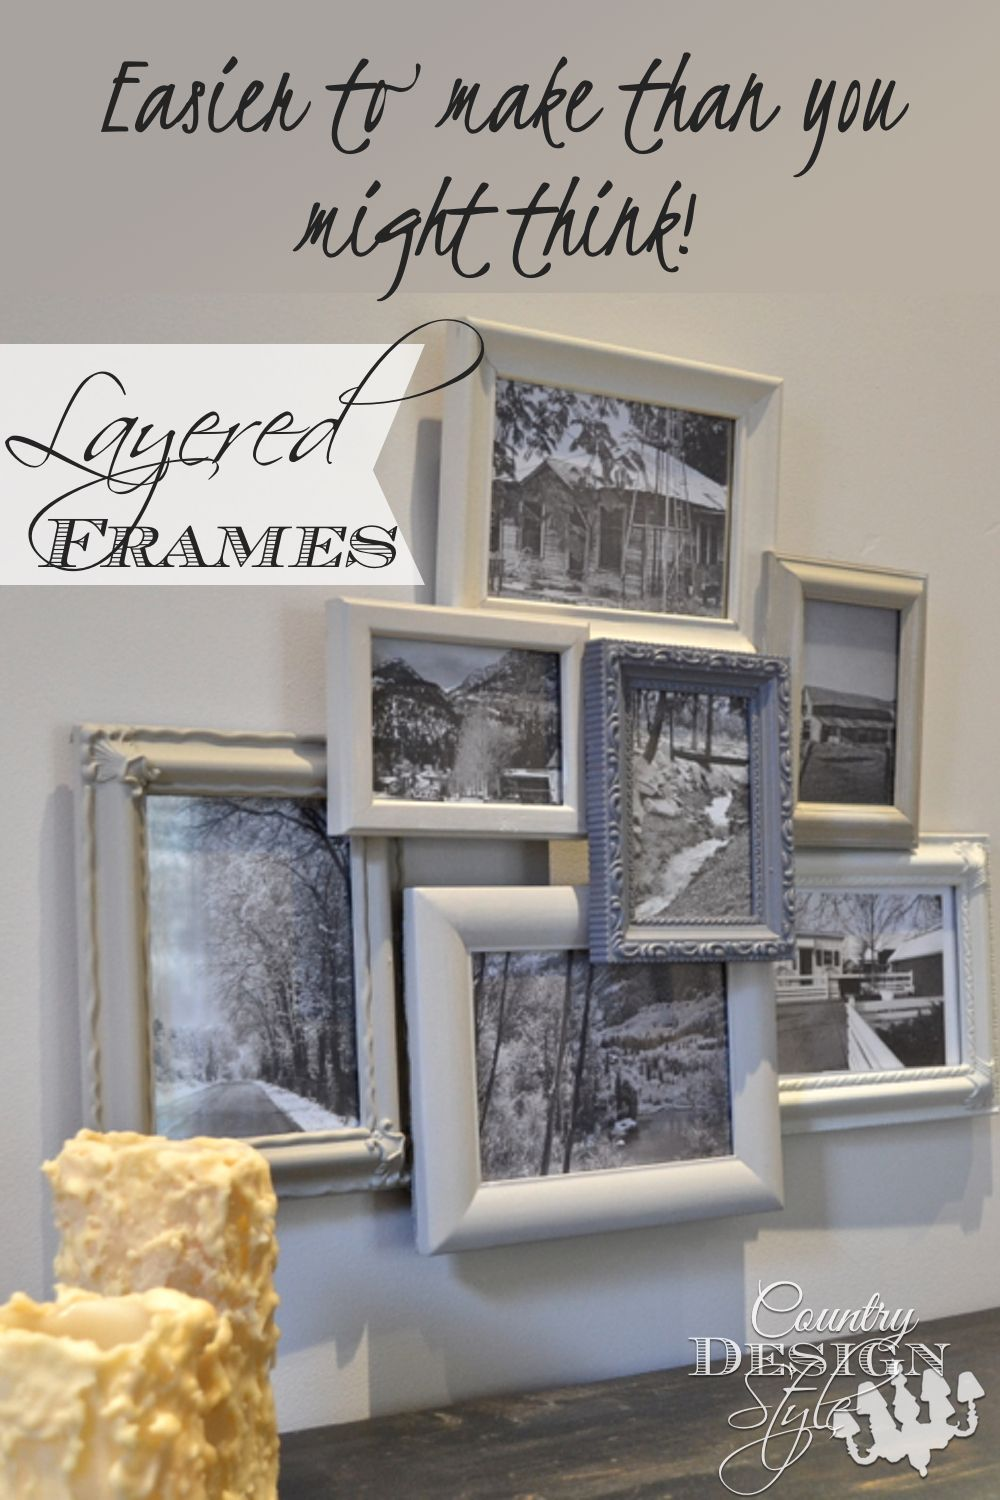 Gallery Wall Collection Of Layered Frames. Easy DIY Farmhouse Style  Project. Do You Have Design Ideas